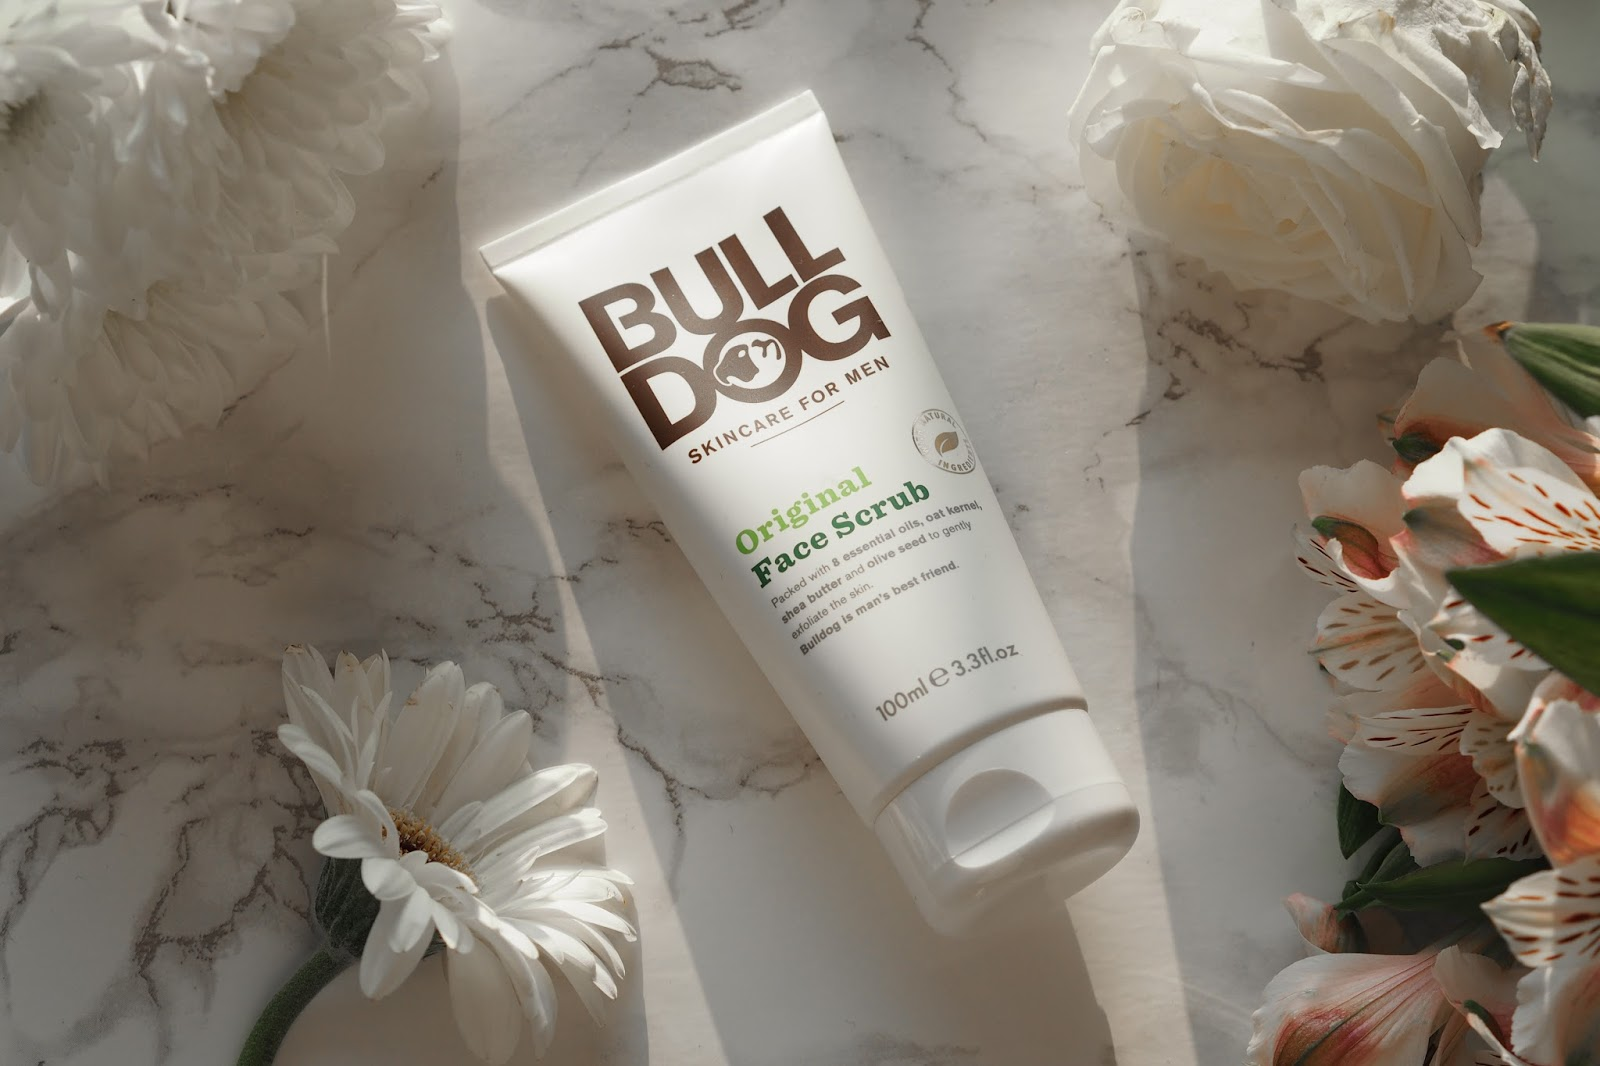 BULLDOG ORIGINAL FACE SCRUB REVIEW